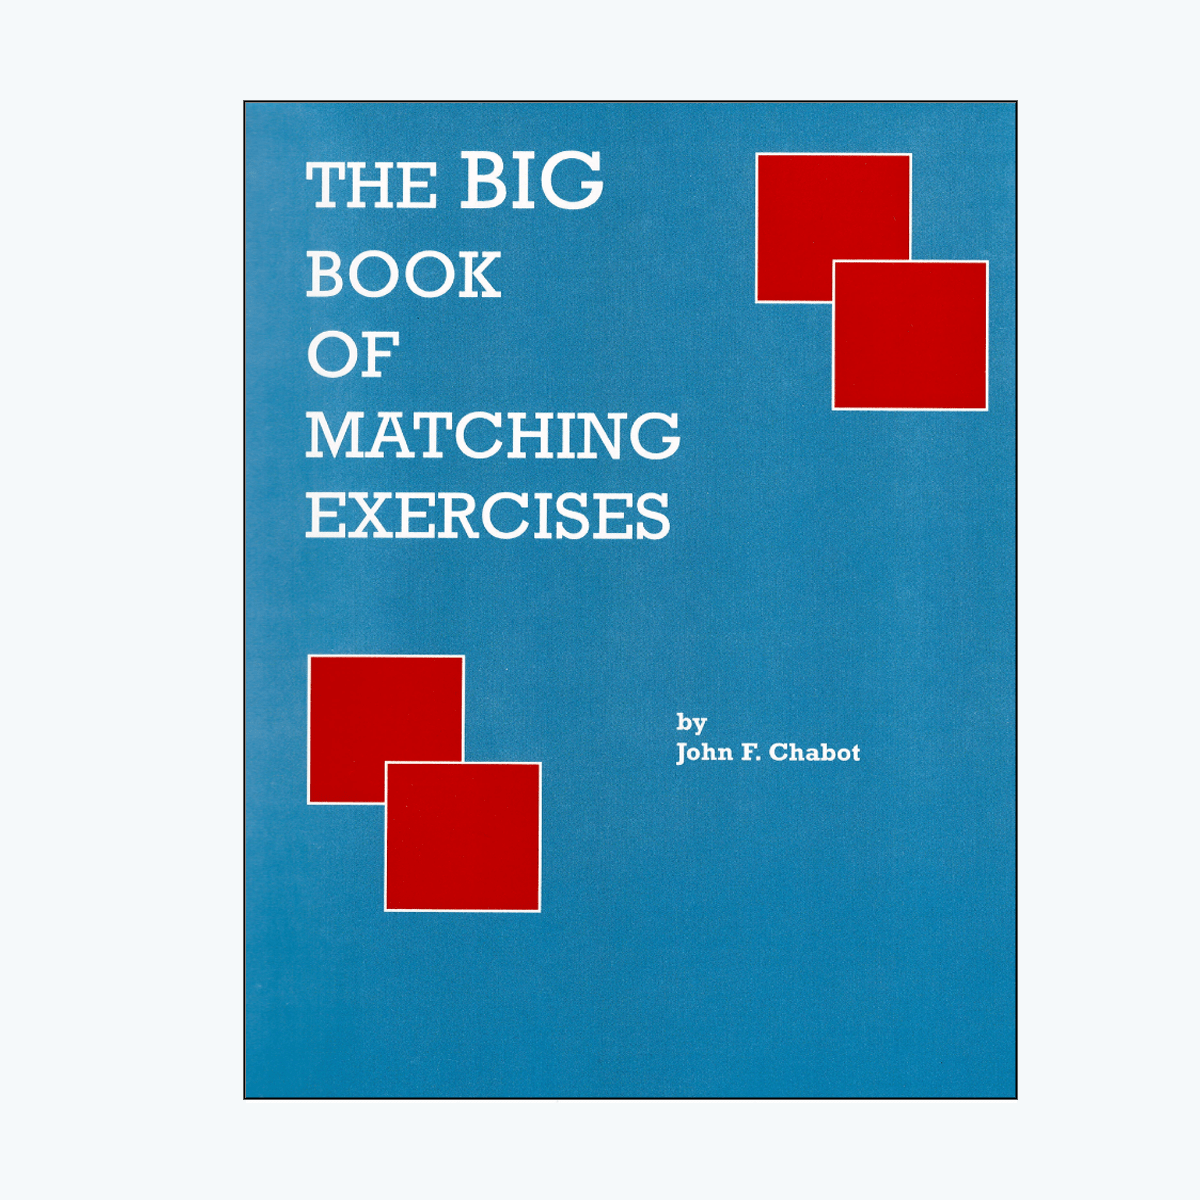 The Big Book of Matching Exercices